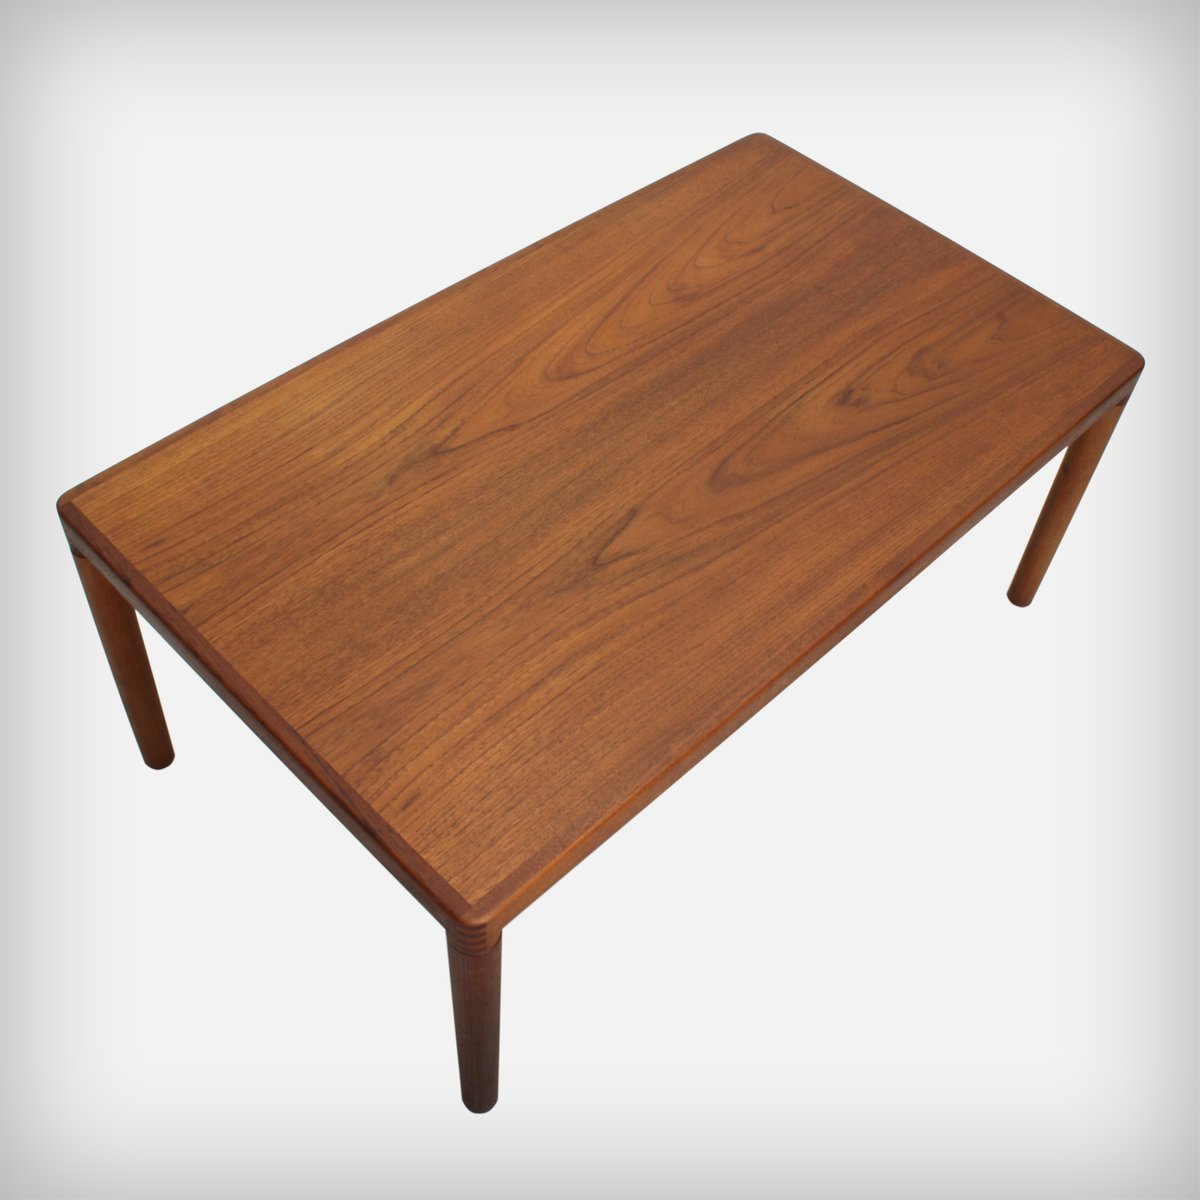 Danish teak coffee table by henry w klein for bramin mbler danish teak coffee table by henry w klein for bramin mbler 1960s geotapseo Images